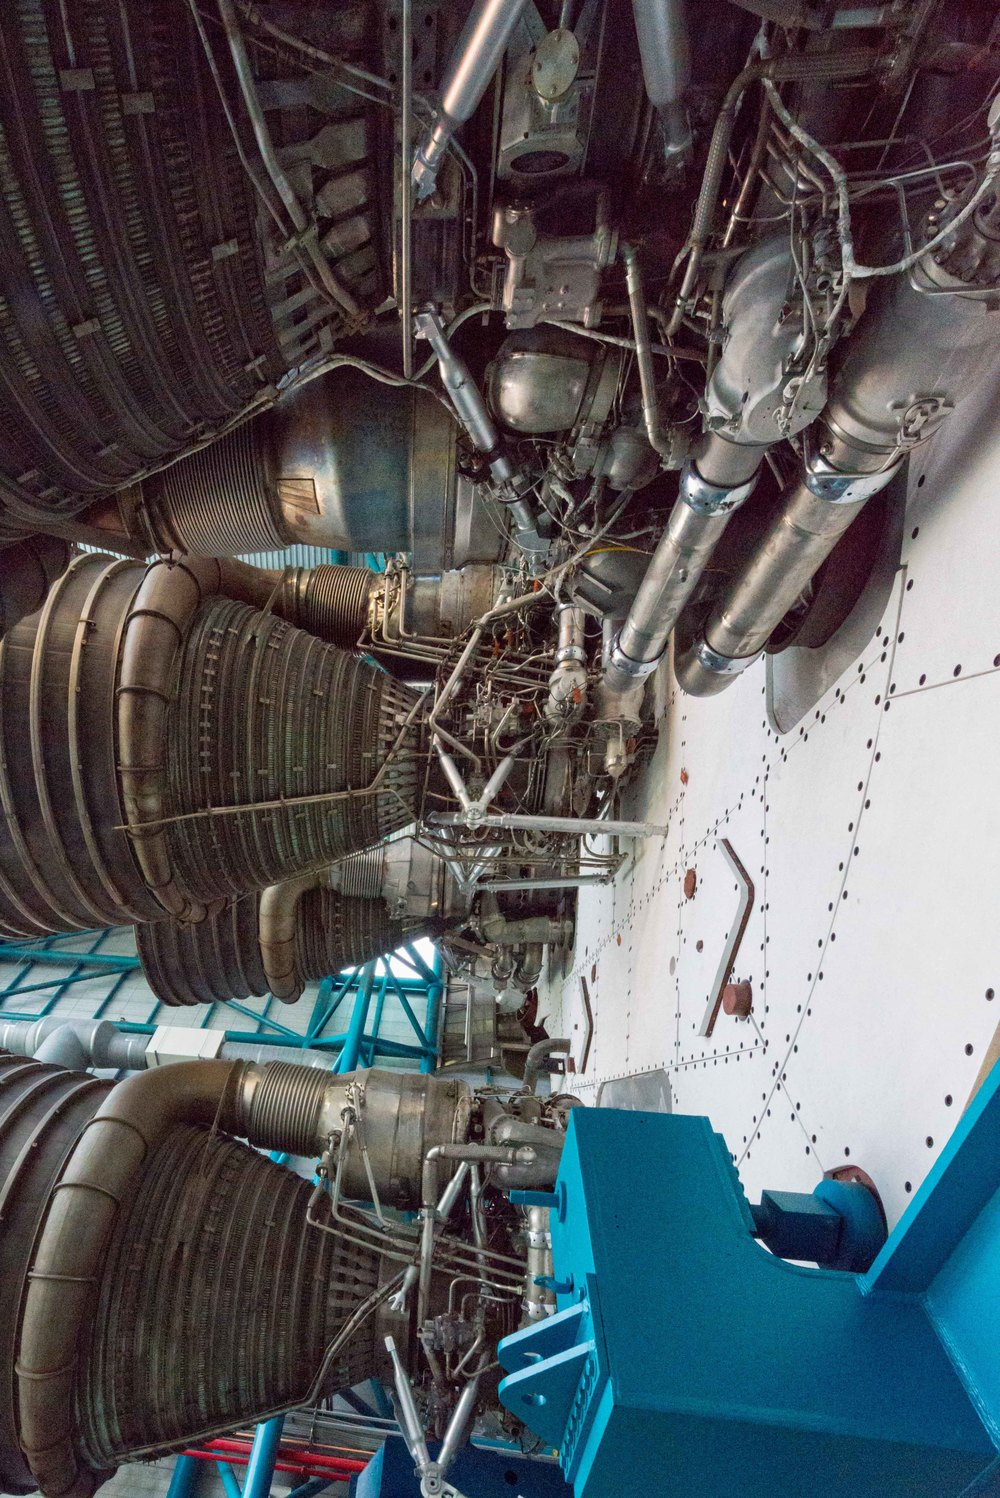 F1 engines of the Saturn V rocket.